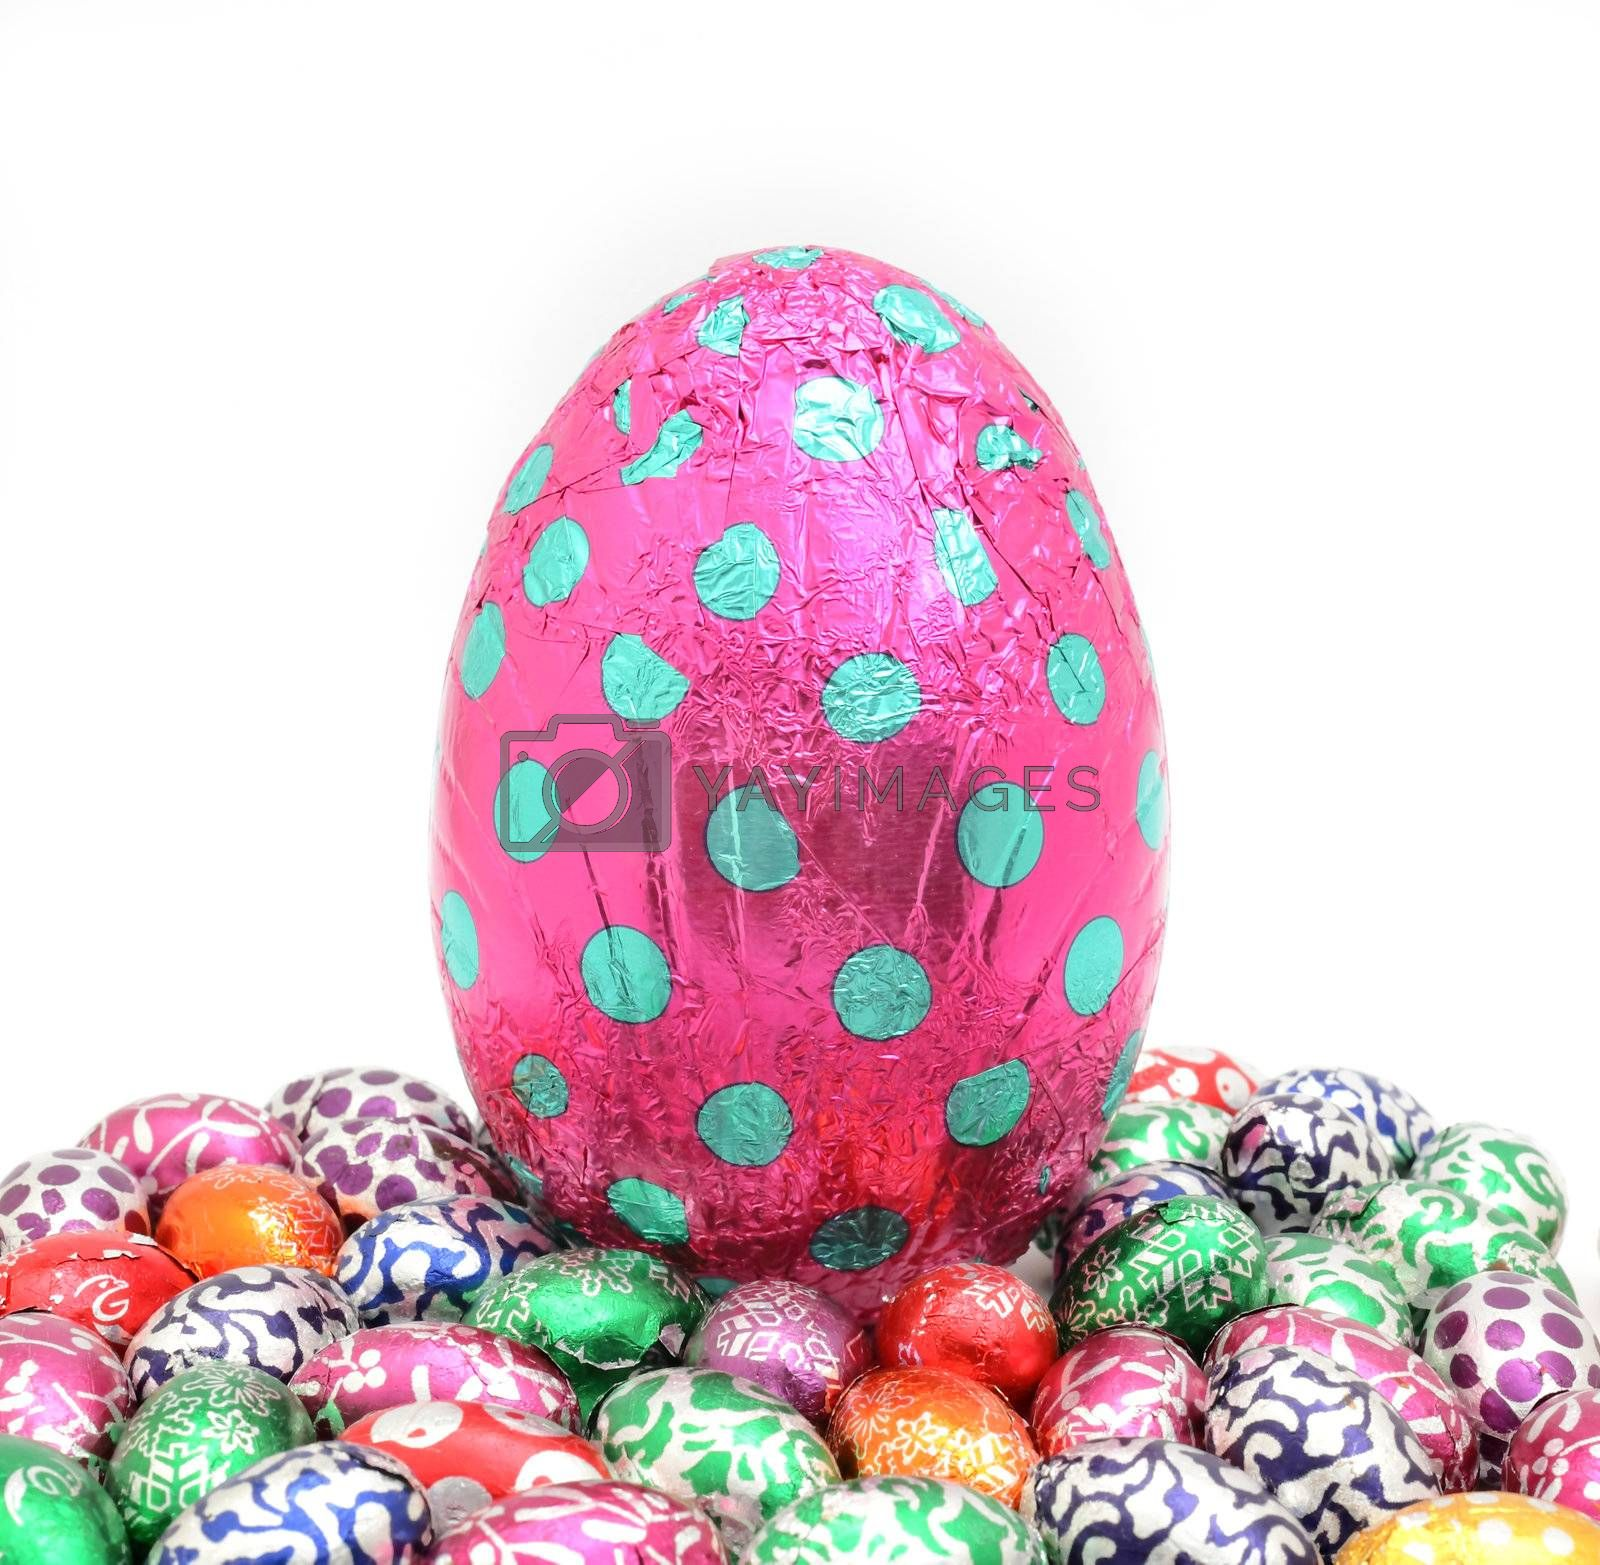 Royalty free image of easter egg by leungchopan